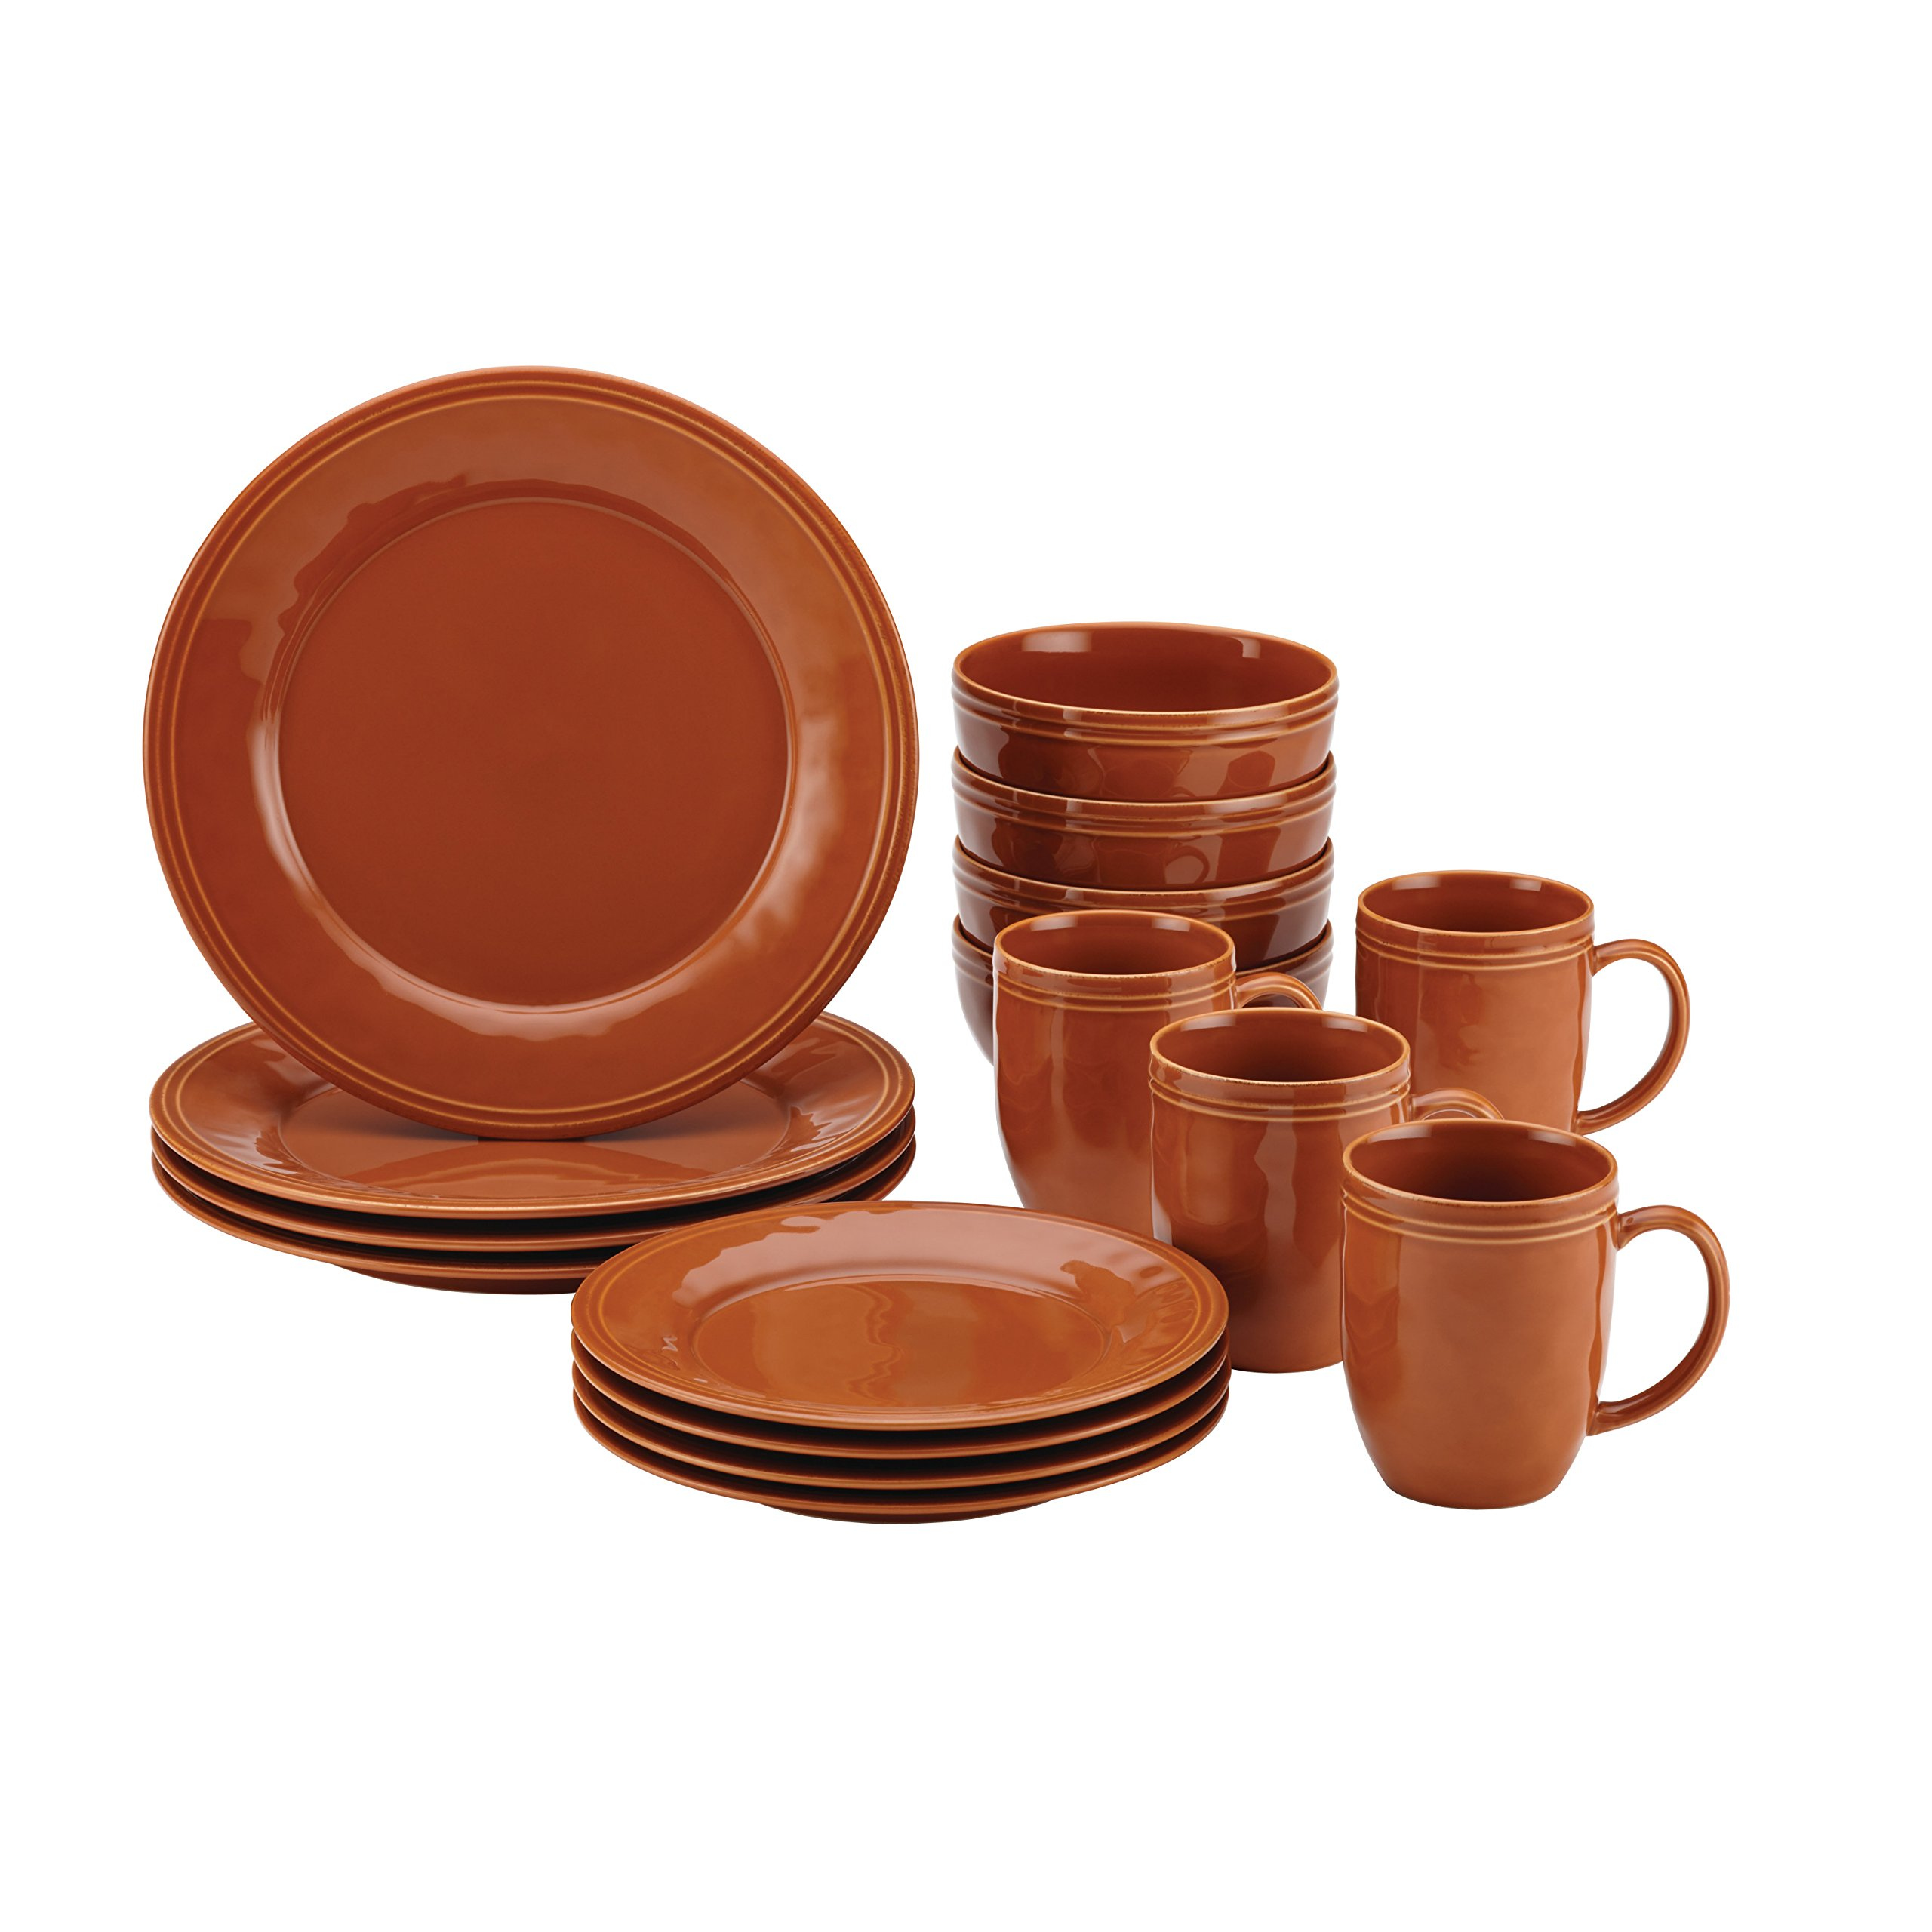 Rachael Ray Cucina 16-Piece Stoneware Dinnerware Set, Pumpkin Orange